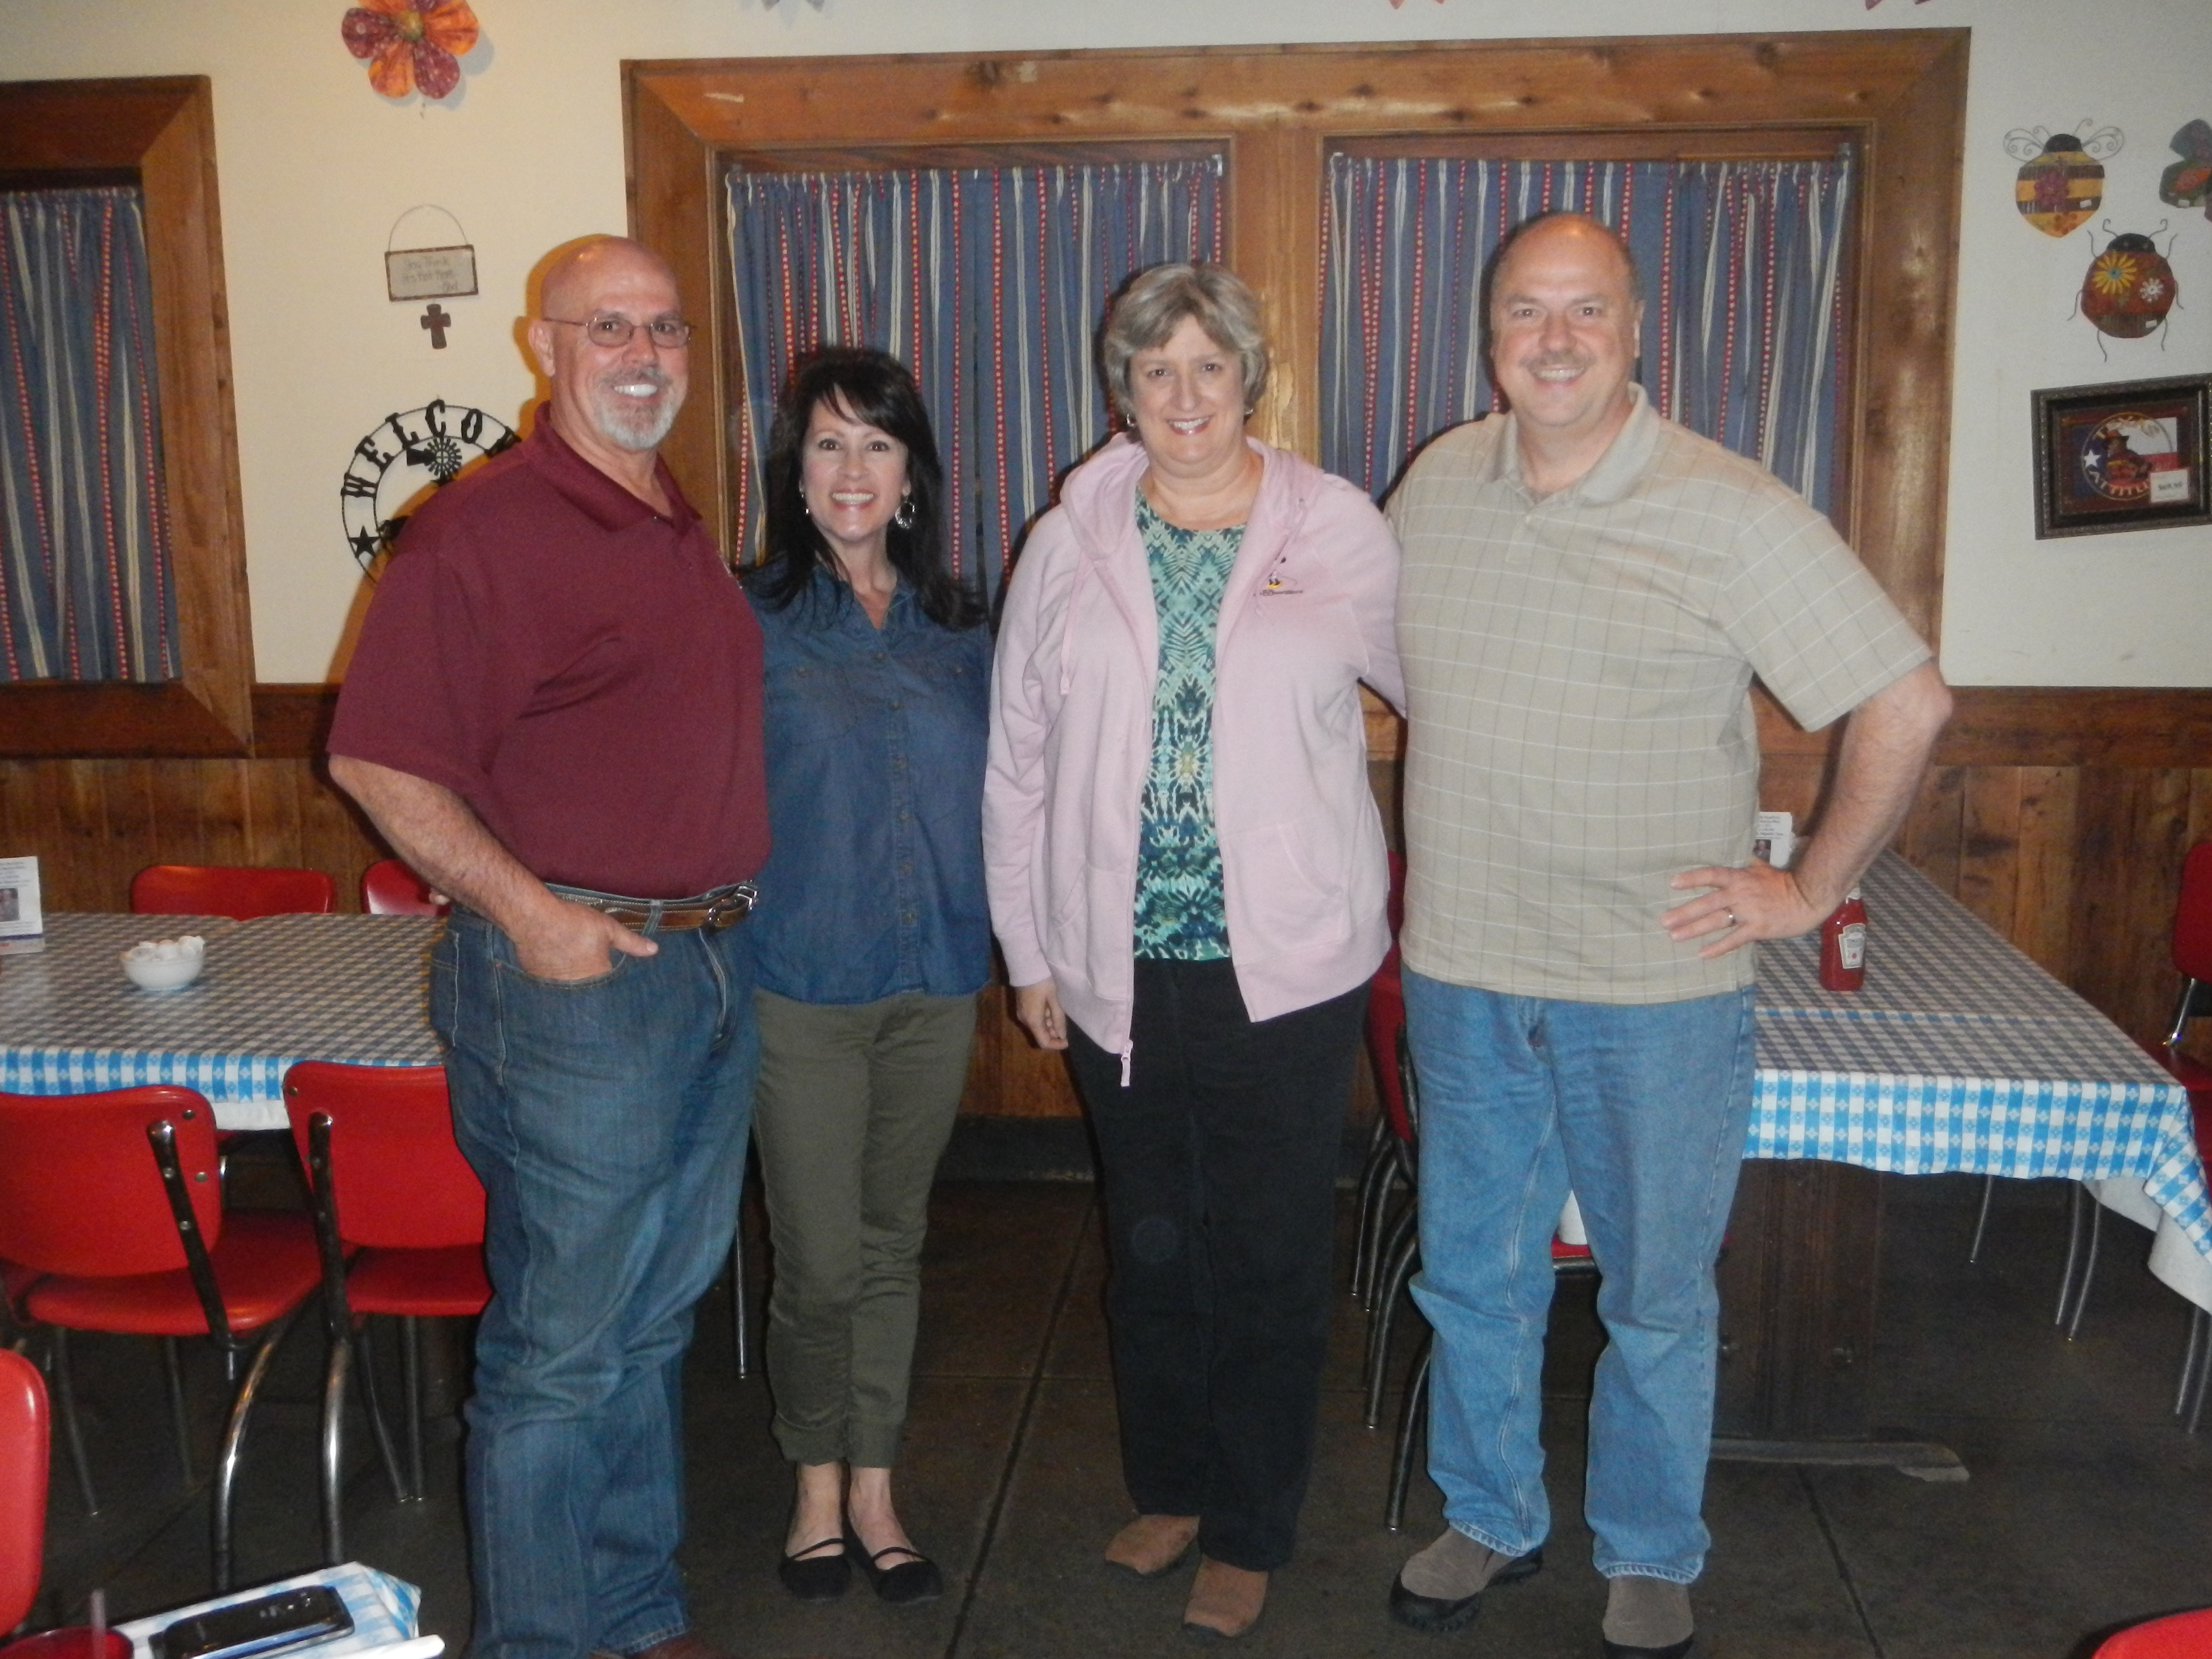 Buddy and Maureen R and us at Goodson's Cafe in Tomball, TX